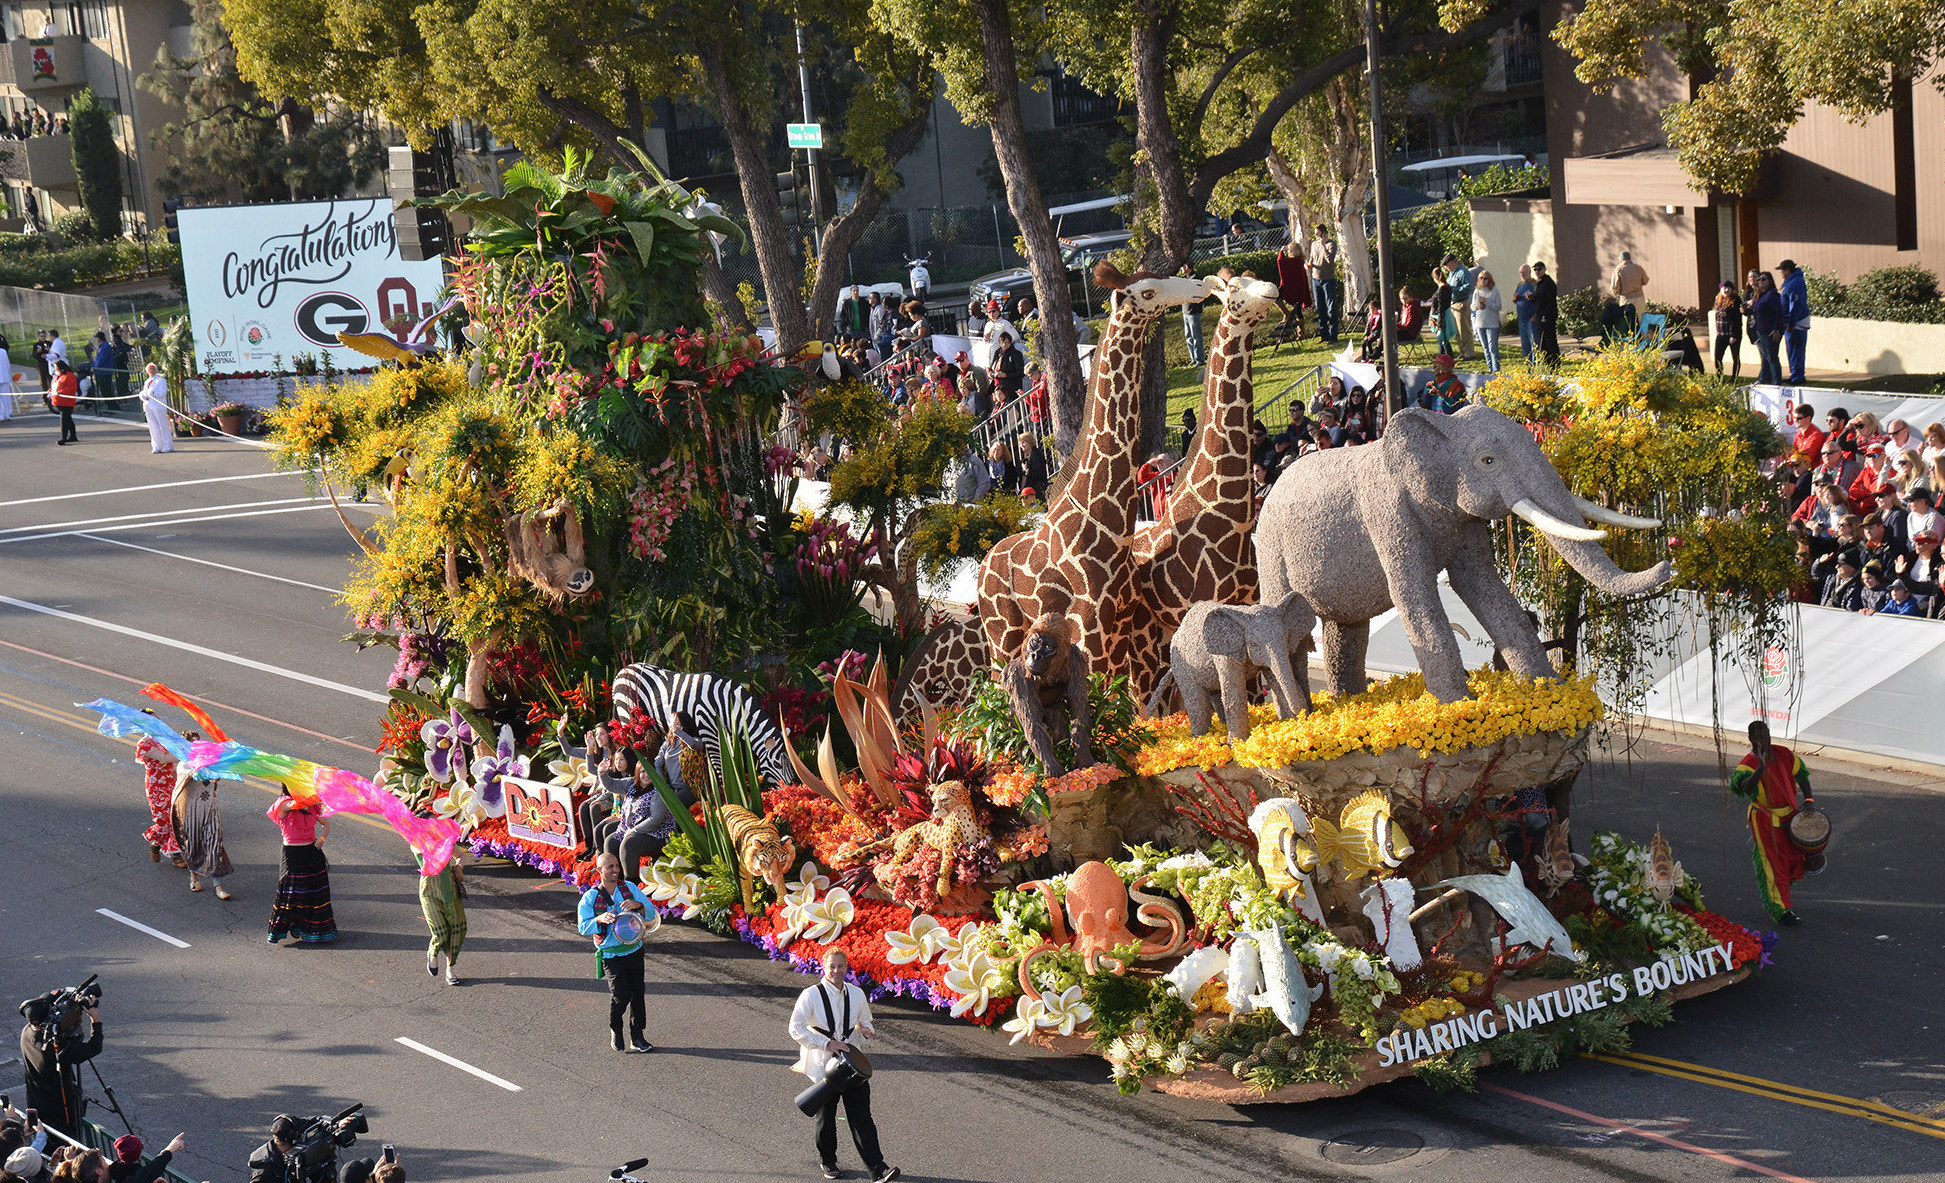 dole packaged foods float, tournament of the roses